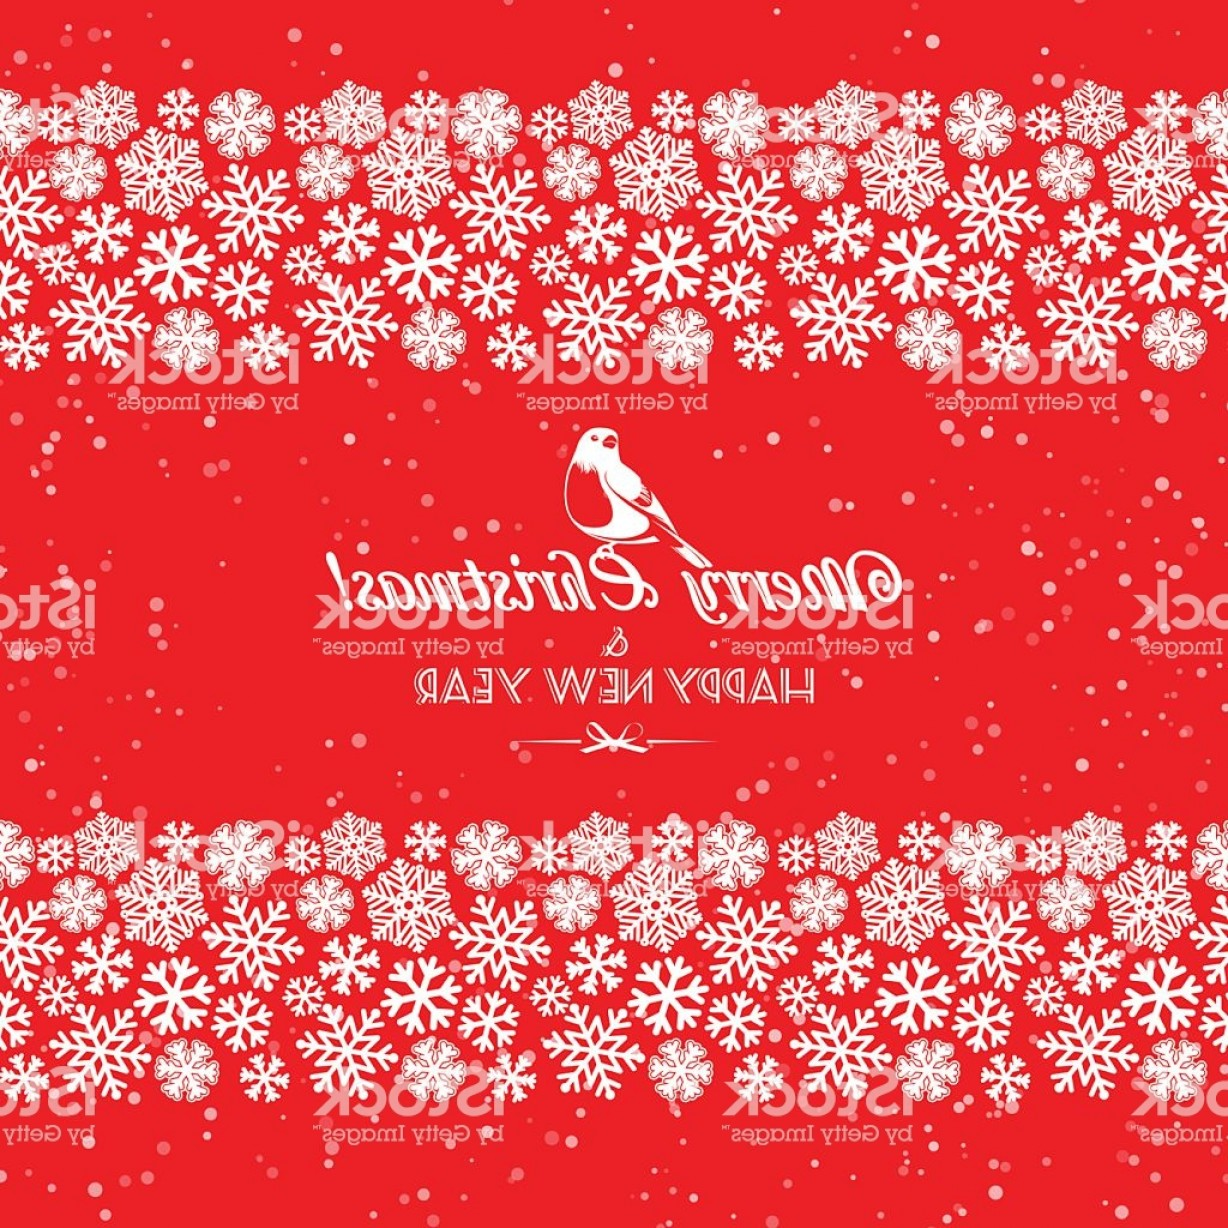 Snowflake Border Vector Art: Festive Christmas And New Year Seamless Snowflakes Borders Gm